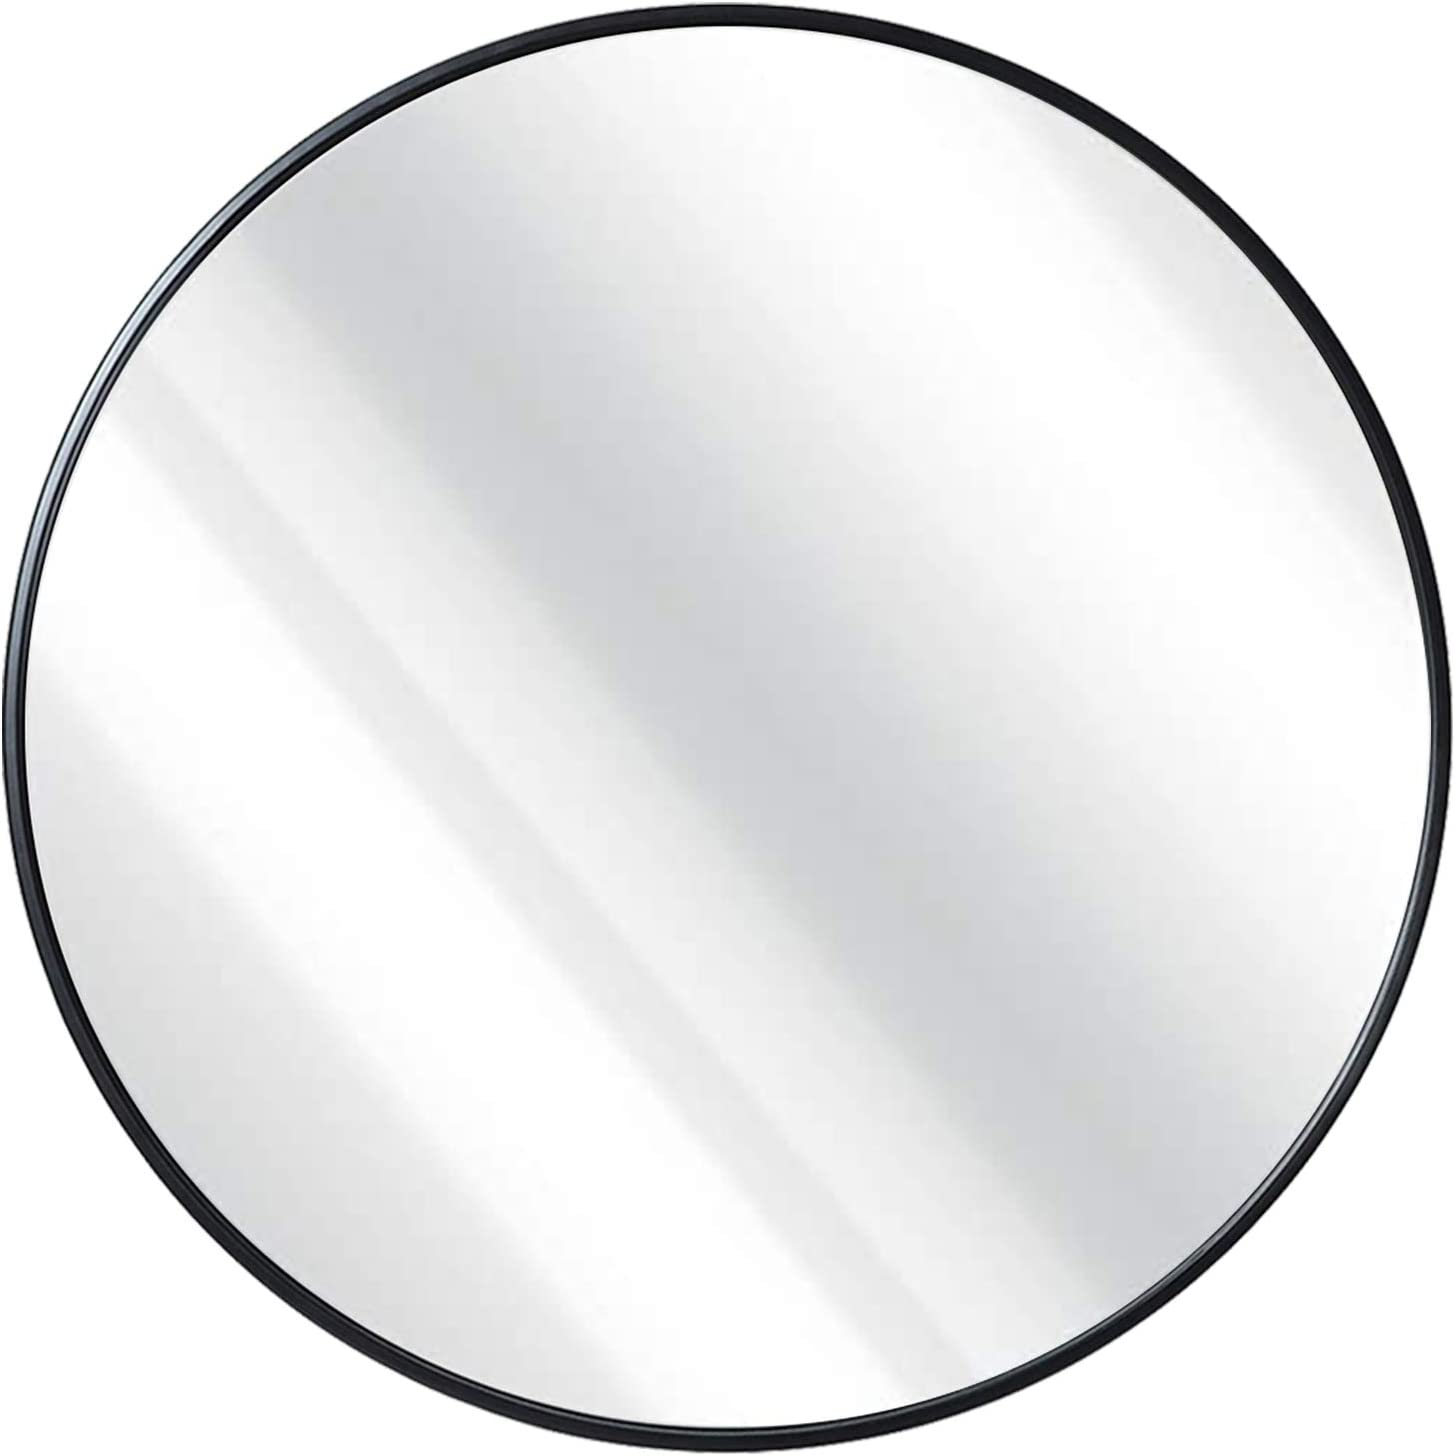 42'' Wall Mounted Round Mirror, Metal Frame Large Circle Mirror for Washing Room, Living Room, Home Decoration